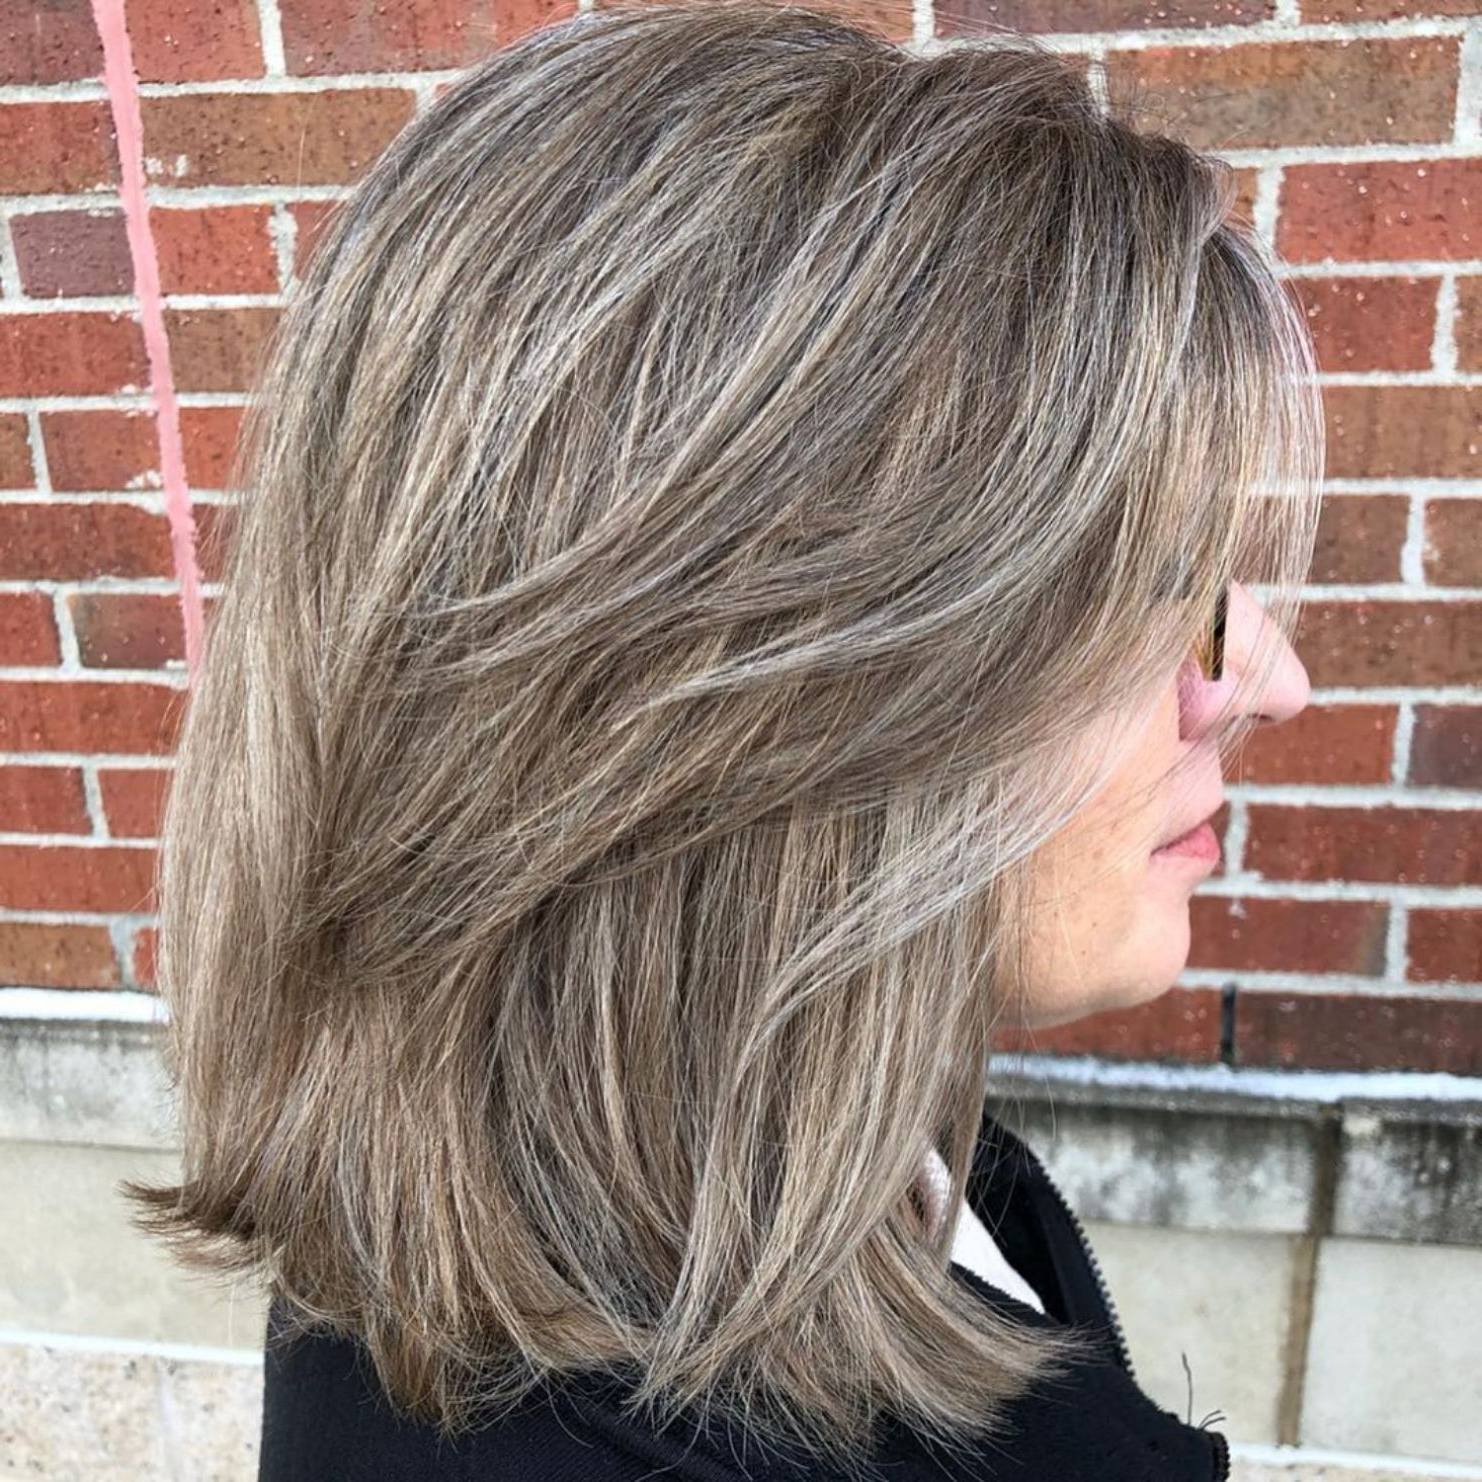 Most Recent Thick Feathered Blonde Lob Hairstyles In Pin On Shoulder Length Ideas (View 11 of 20)